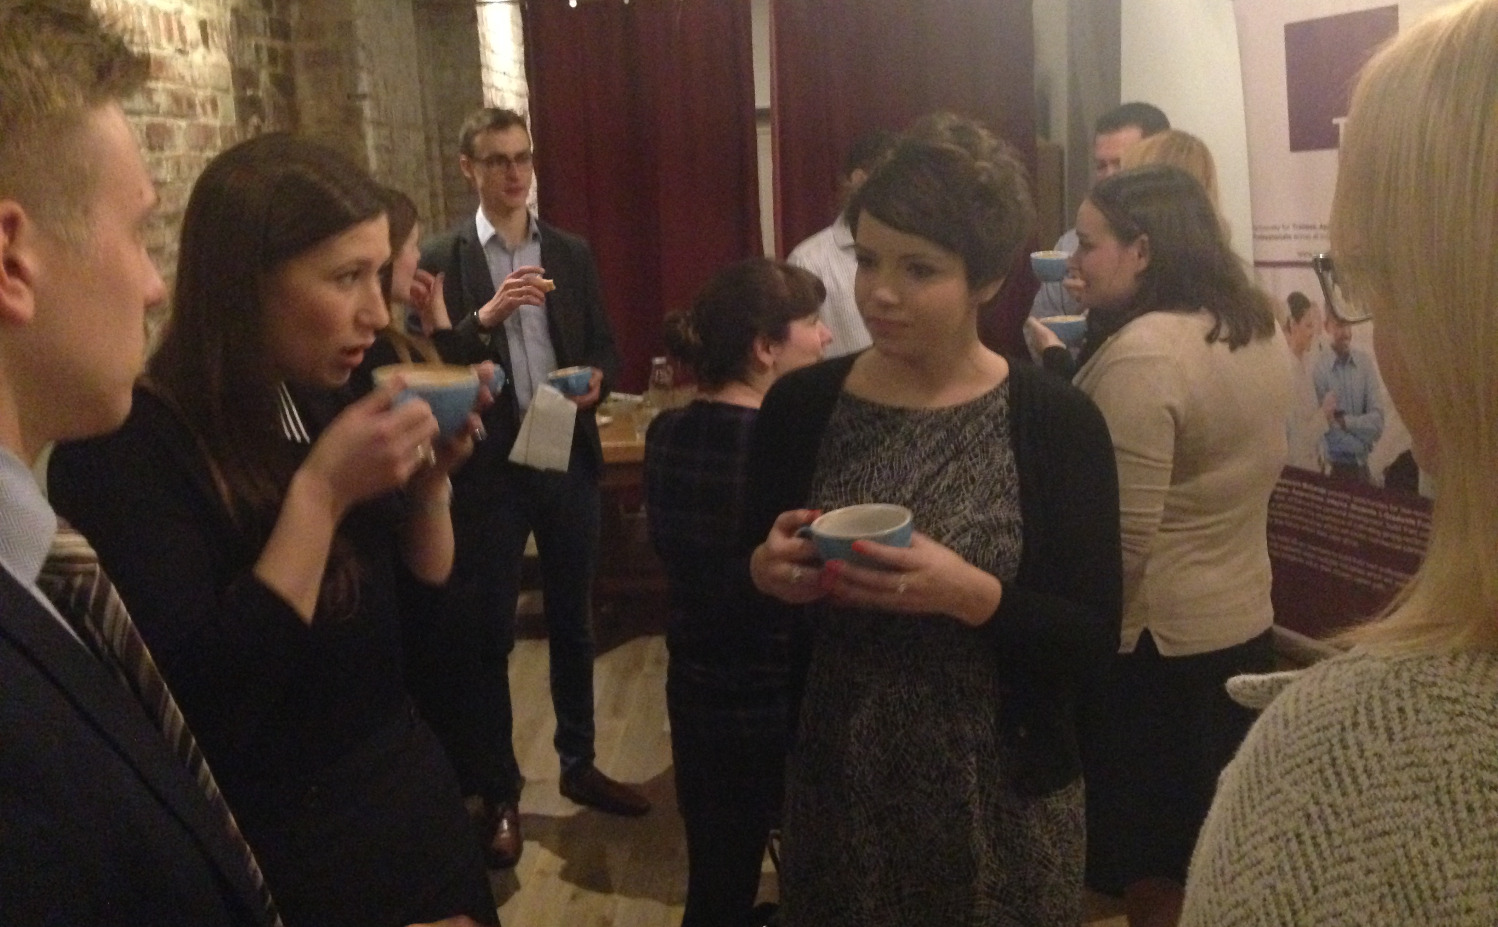 Professionals networking over coffee